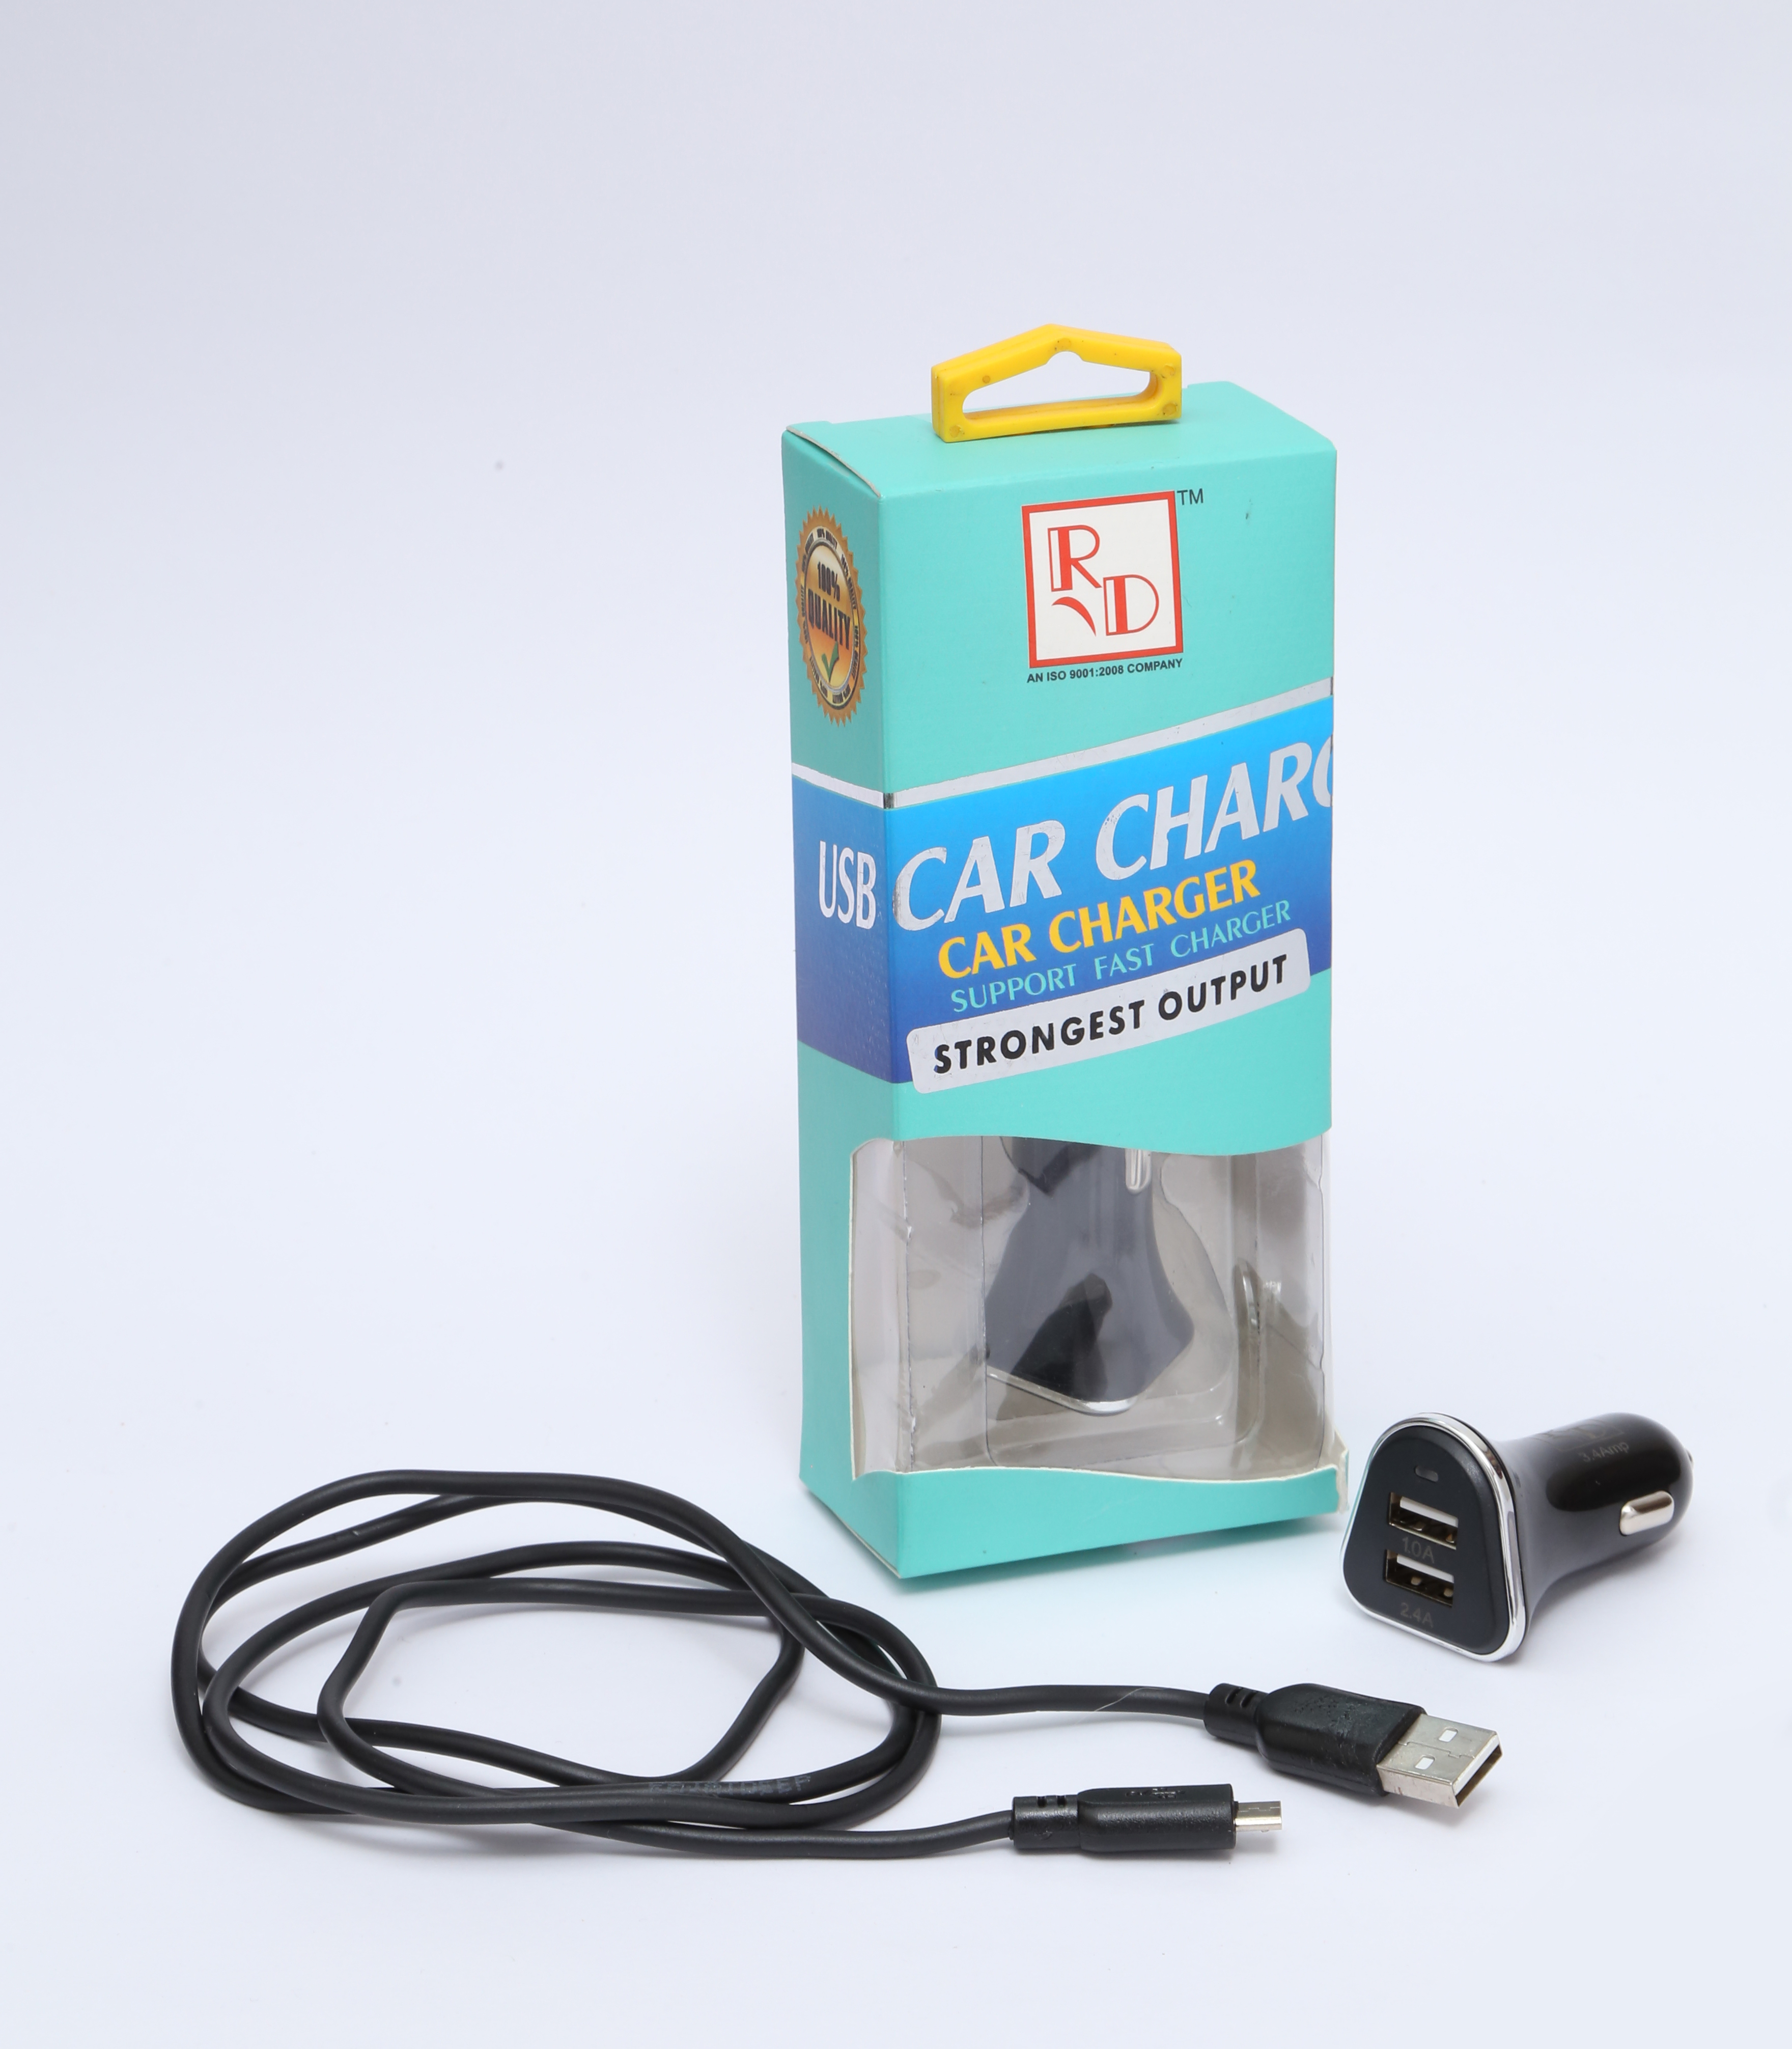 Car Charger Rd Mc 10 With Charging Cable Rd Overseas